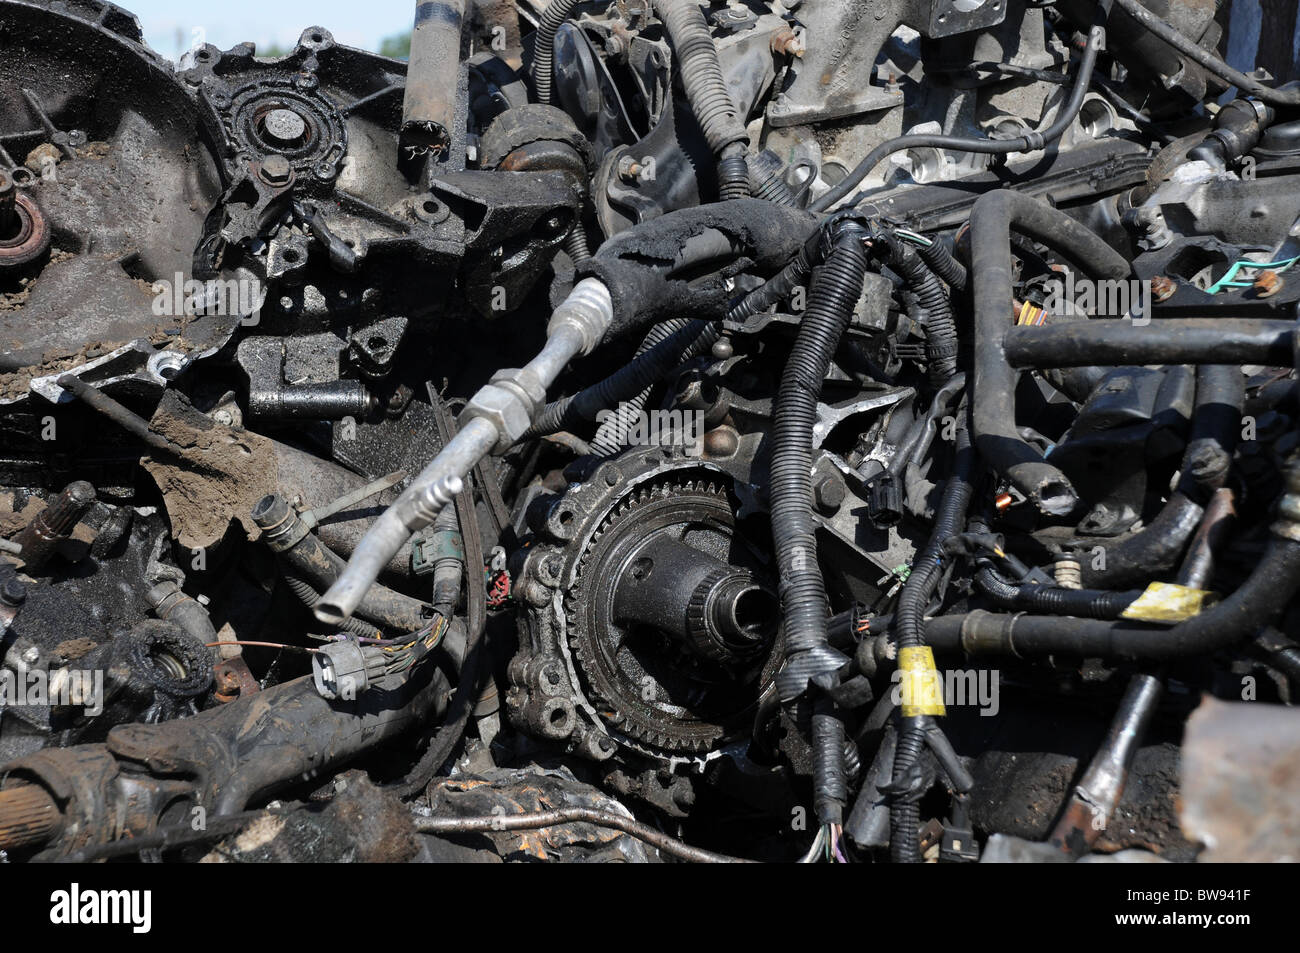 A selection of scrap metal car parts, pipes and tubing - Stock Image